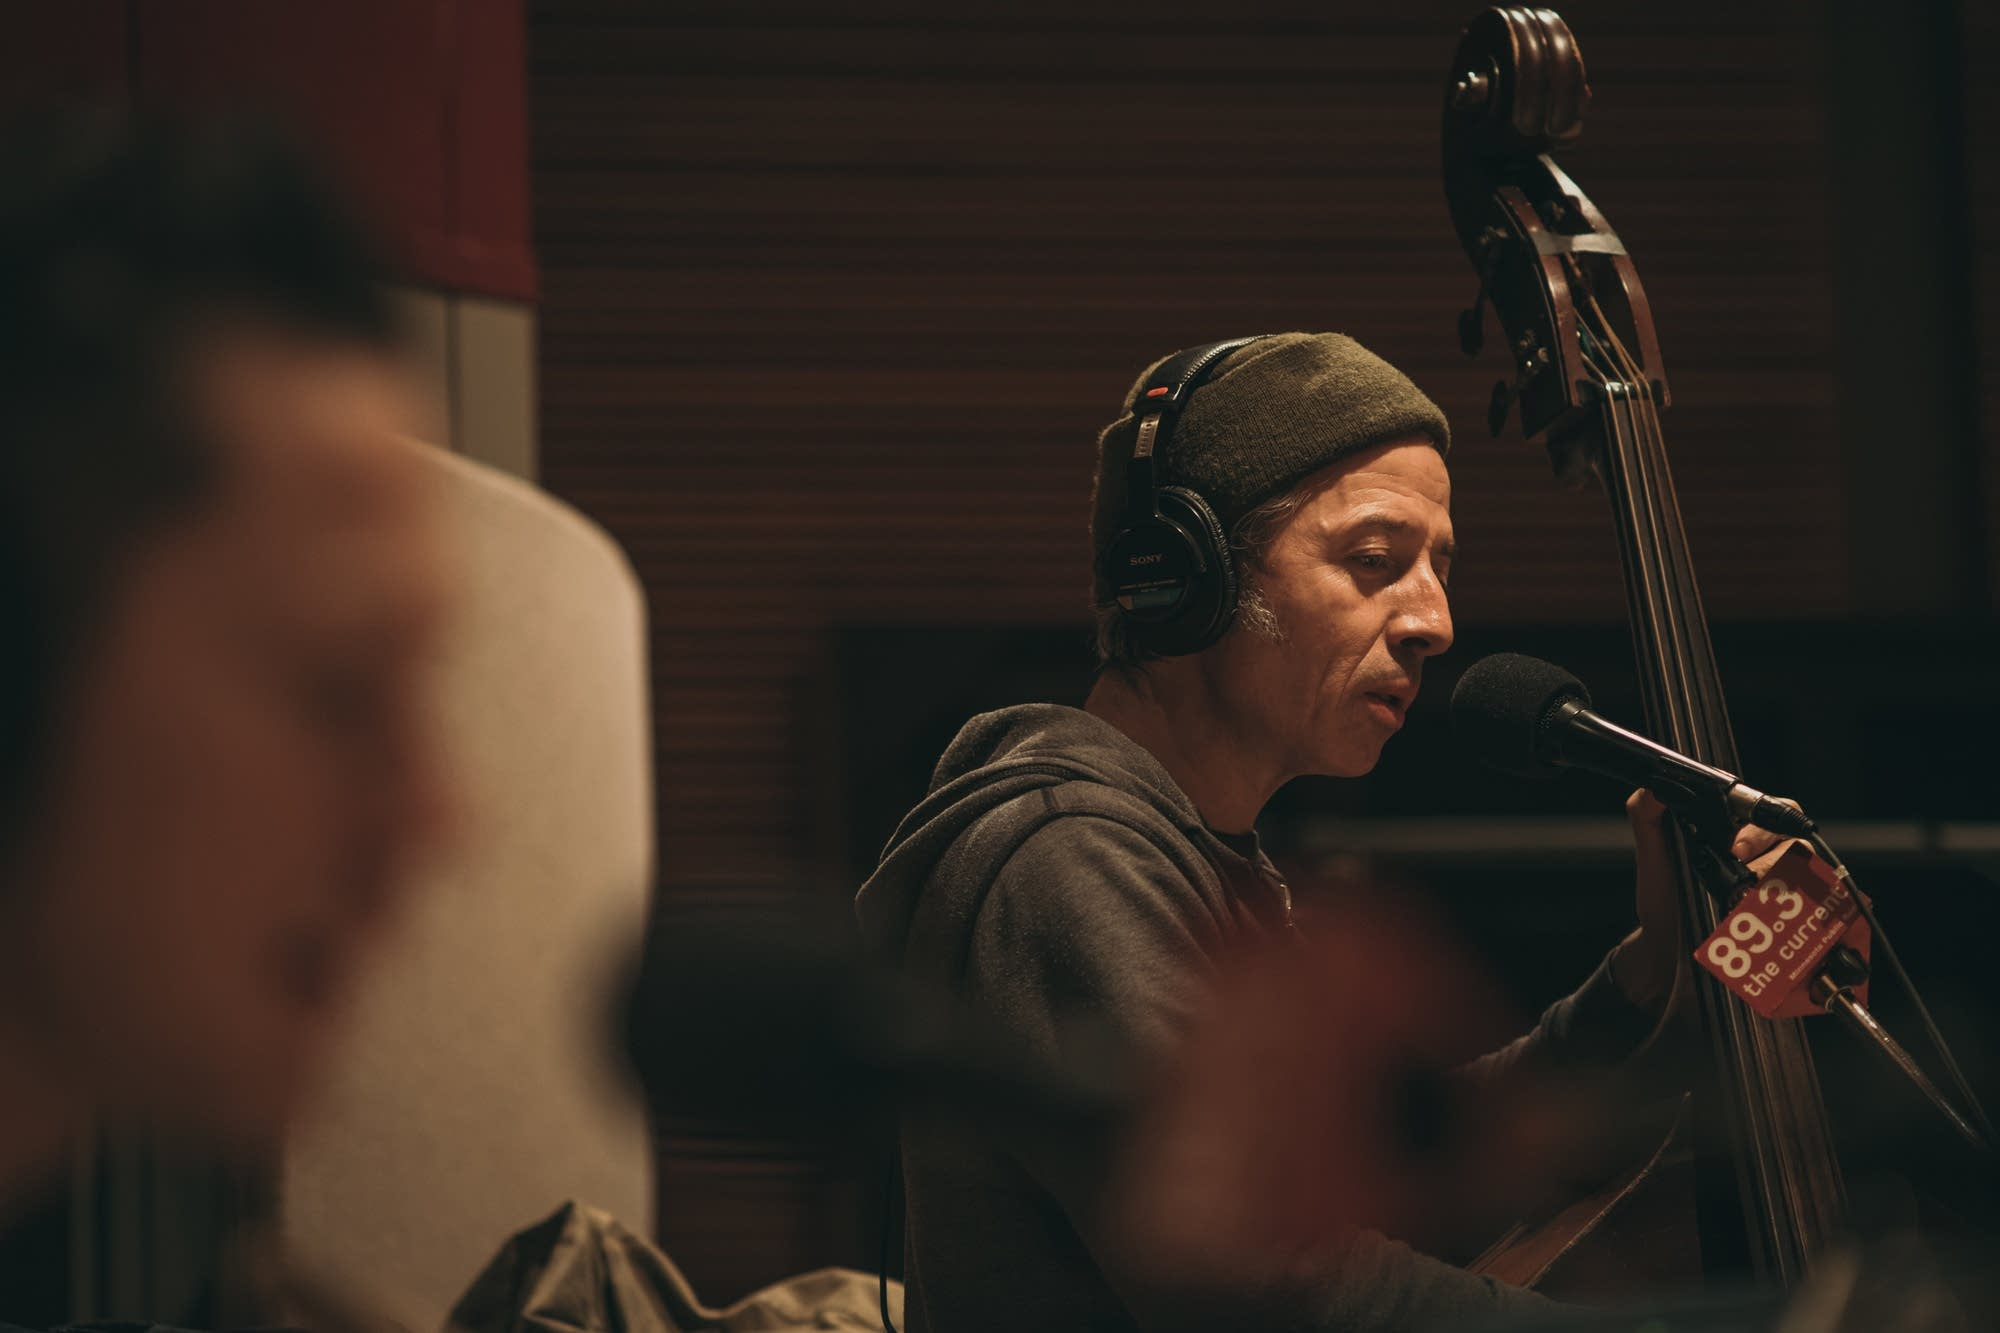 JD McPherson performs in The Current studio